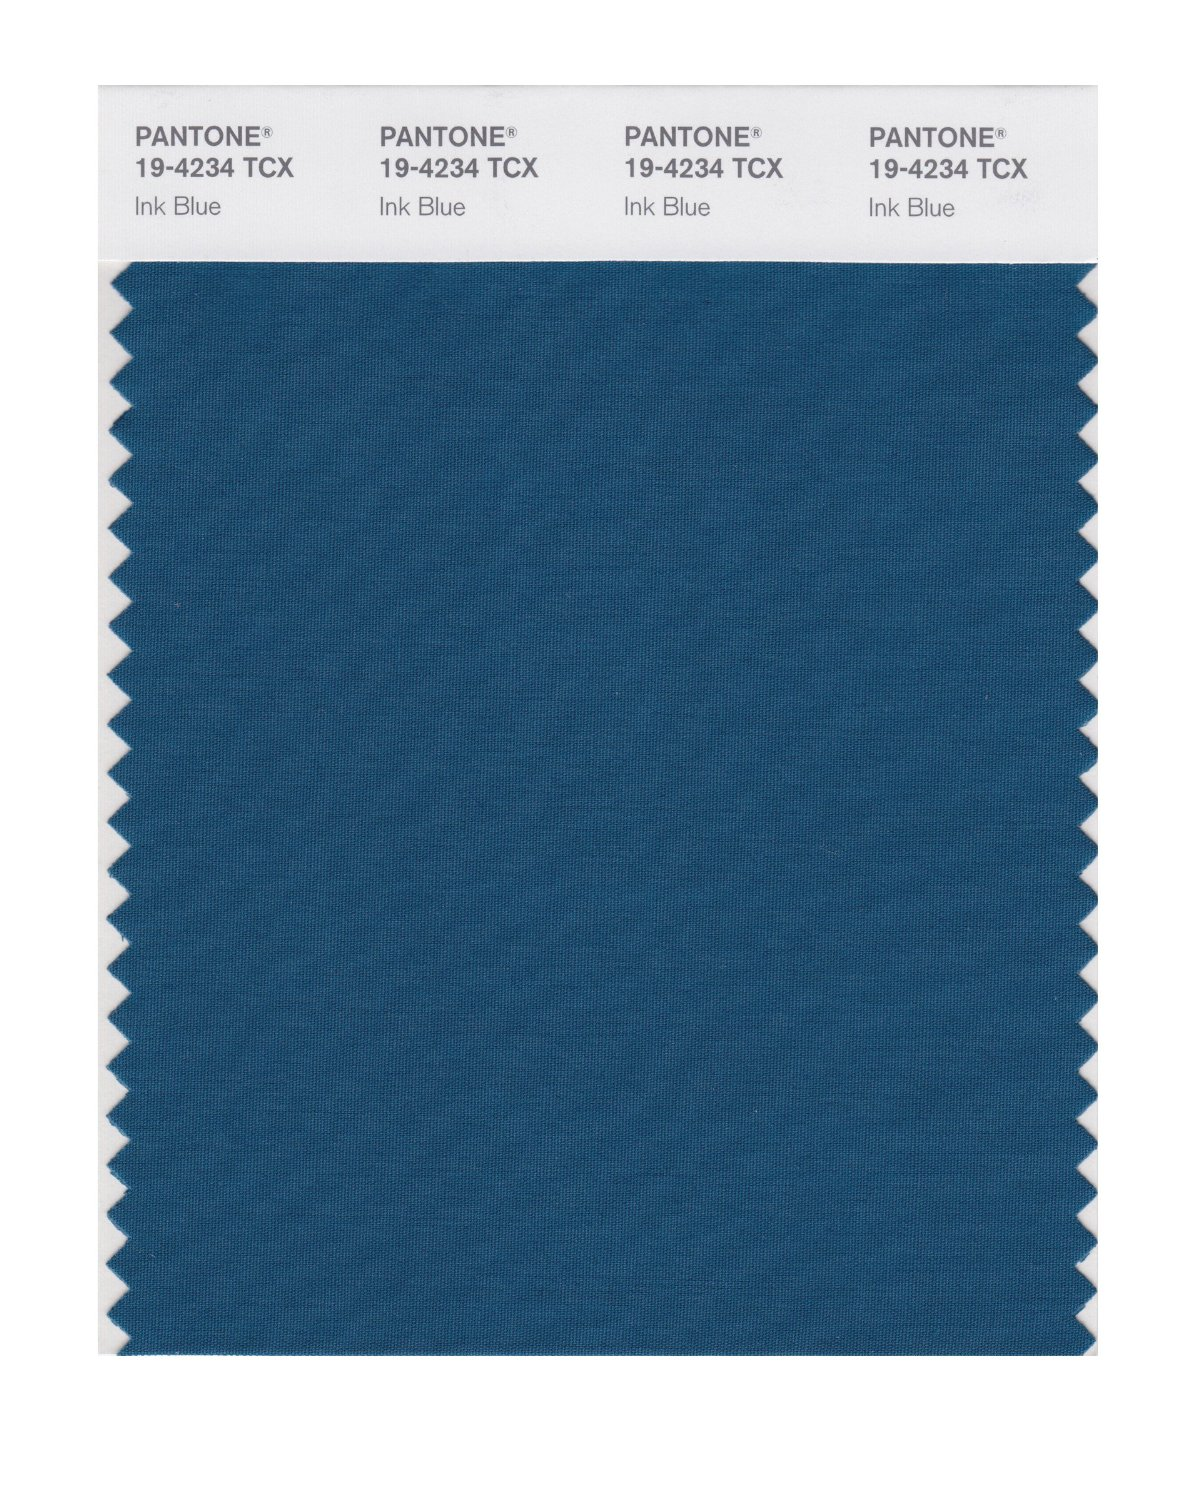 Pantone Smart Swatch 19-4234 Ink Blue